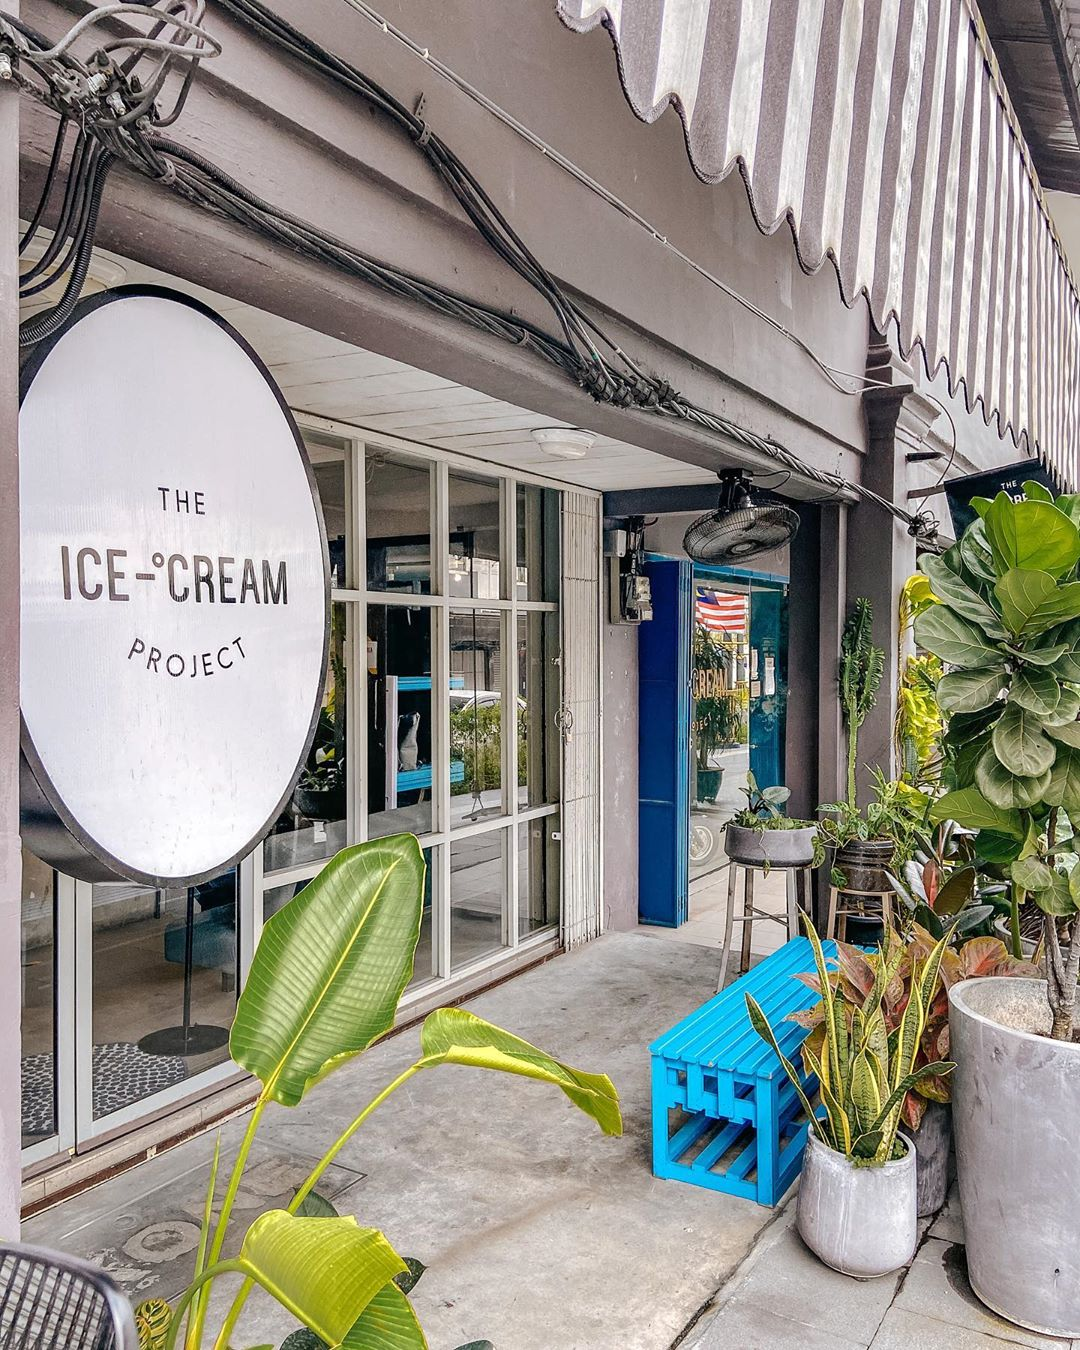 TIP - The Ice cream Project